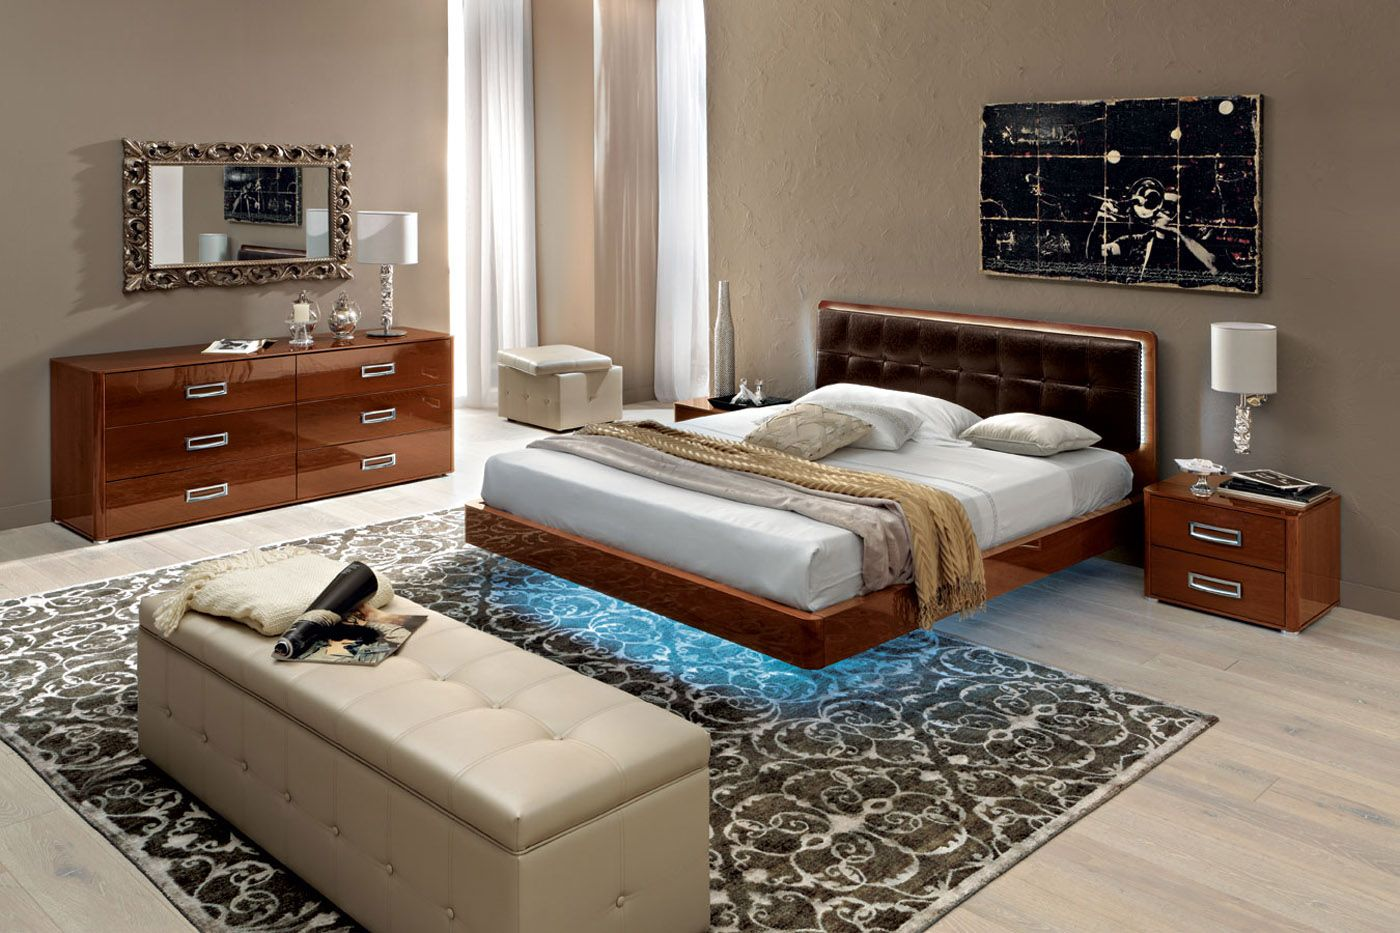 Living Room Stylish Bedroom Decor 1000 images about bedroom on pinterest romantic design designs and bedrooms